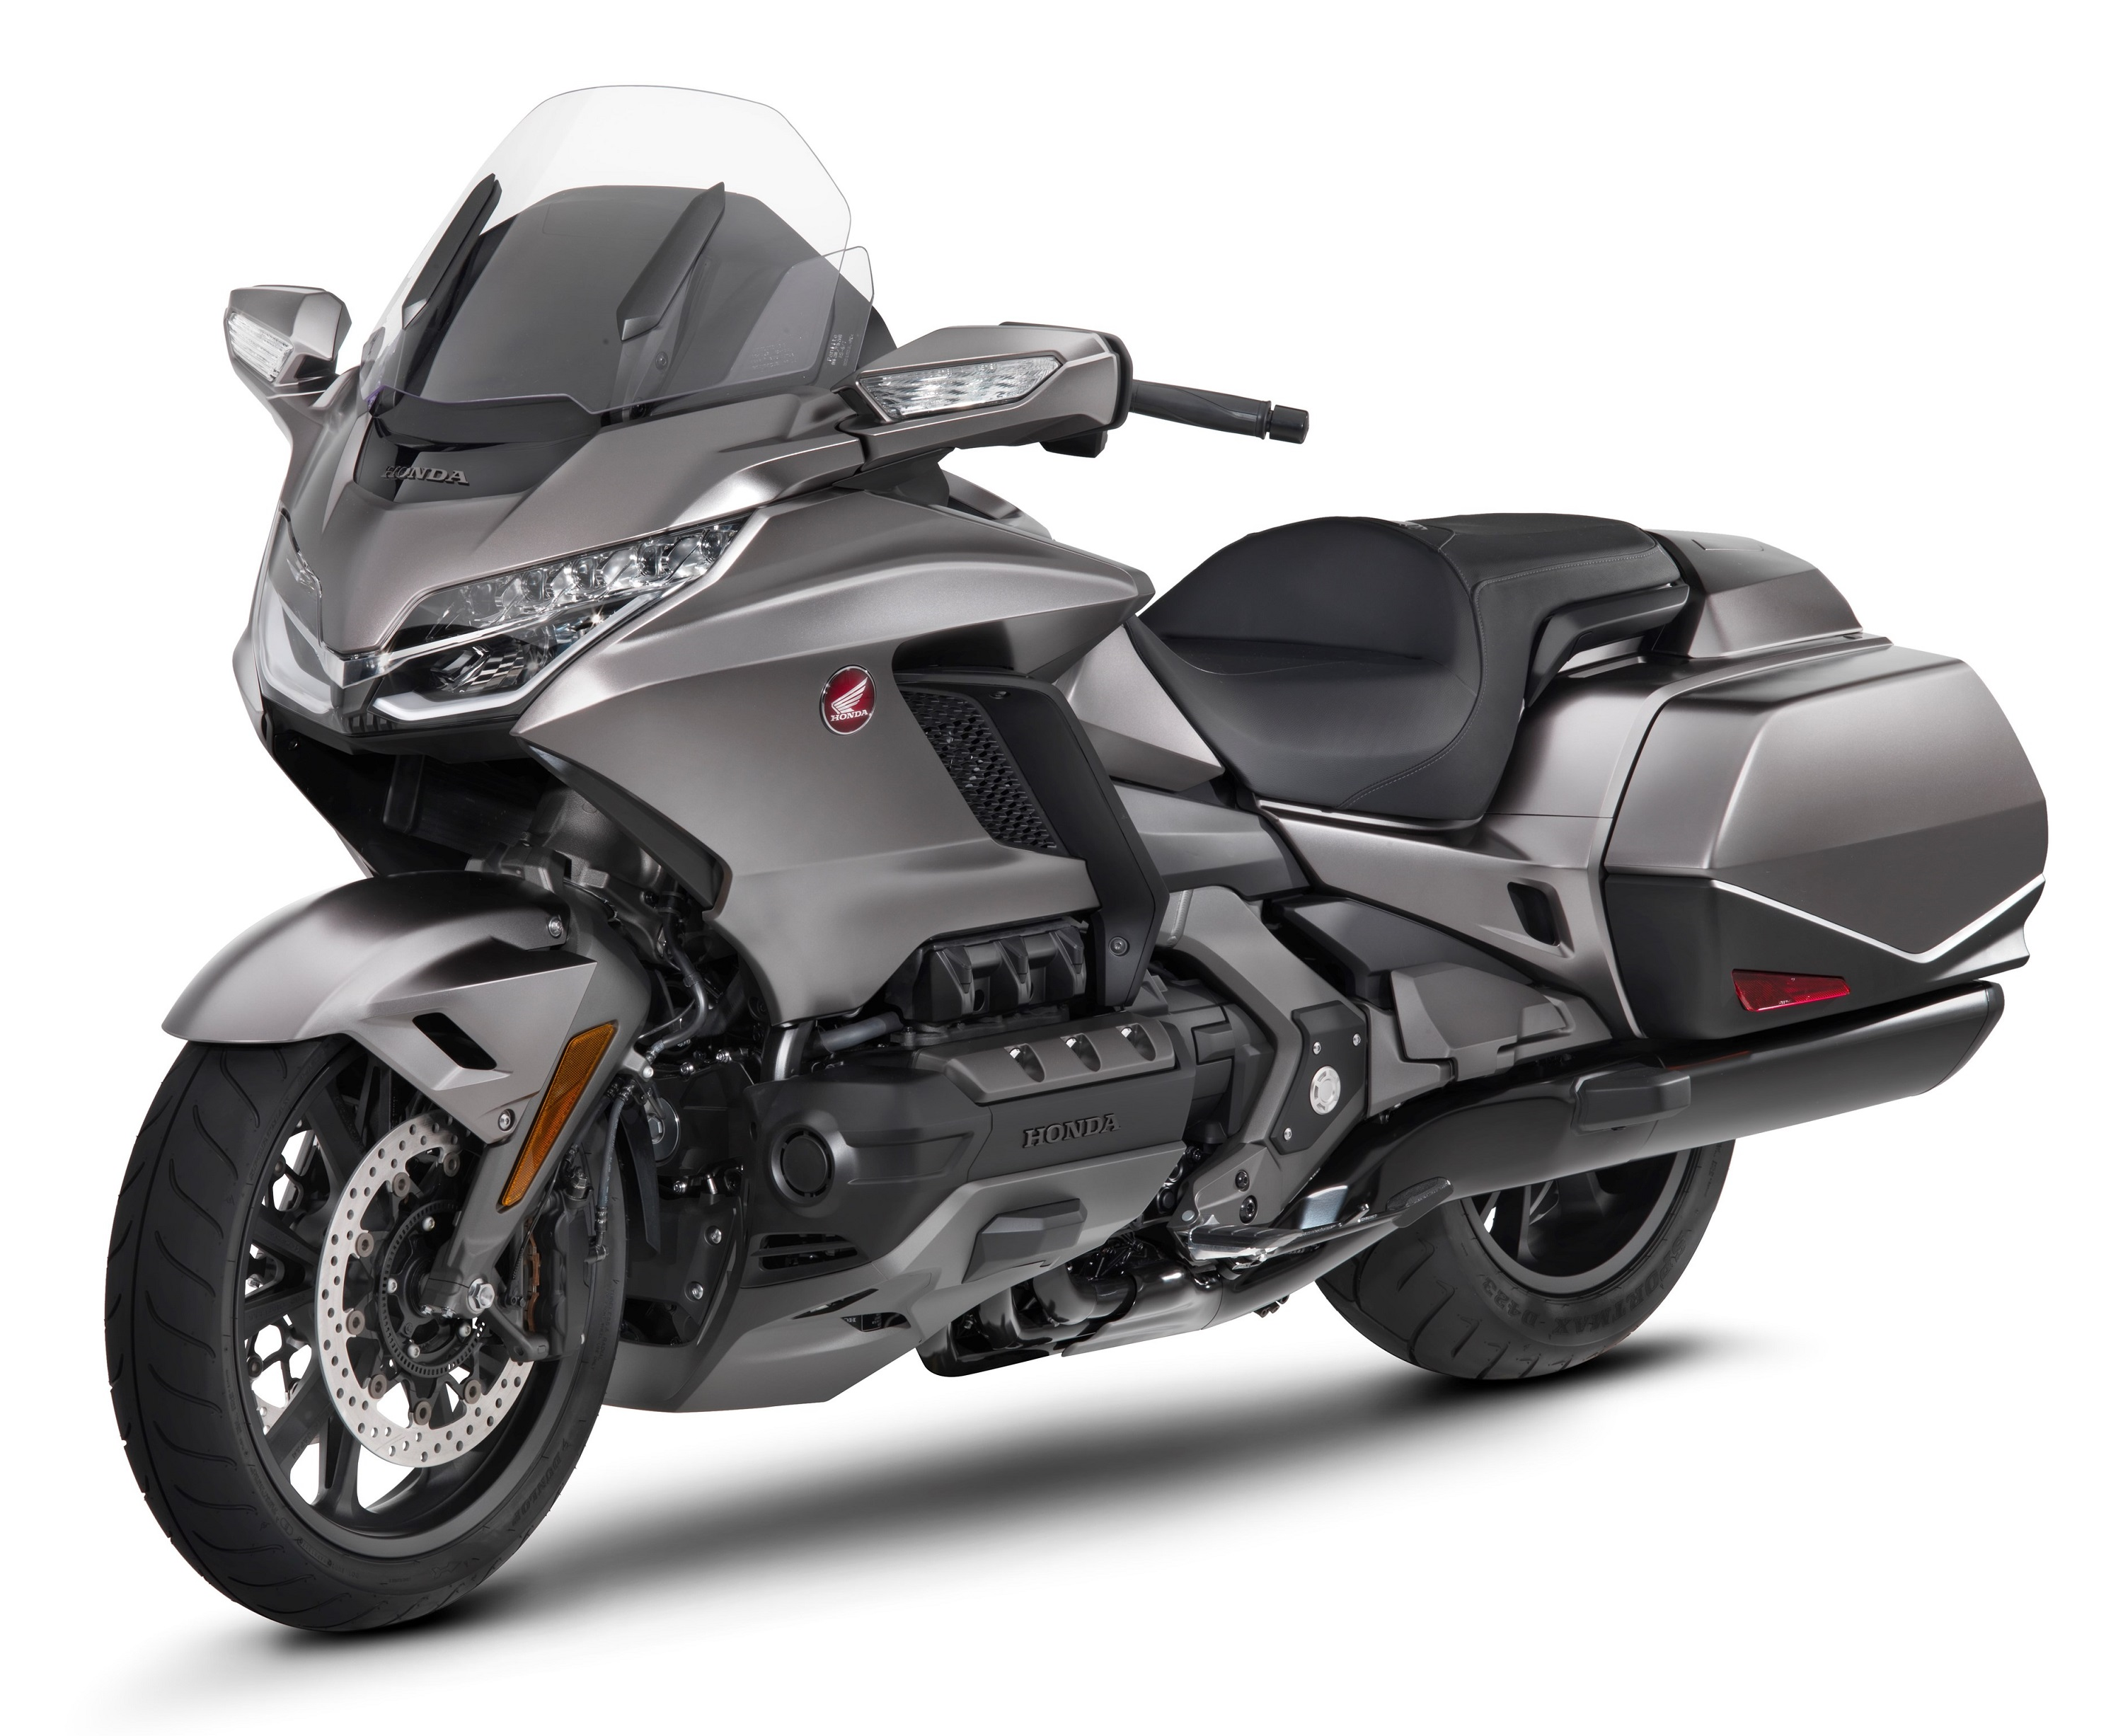 honda goldwing 1800 wiring diagram honda goldwing gl1500 wiring diagram odicis. Black Bedroom Furniture Sets. Home Design Ideas